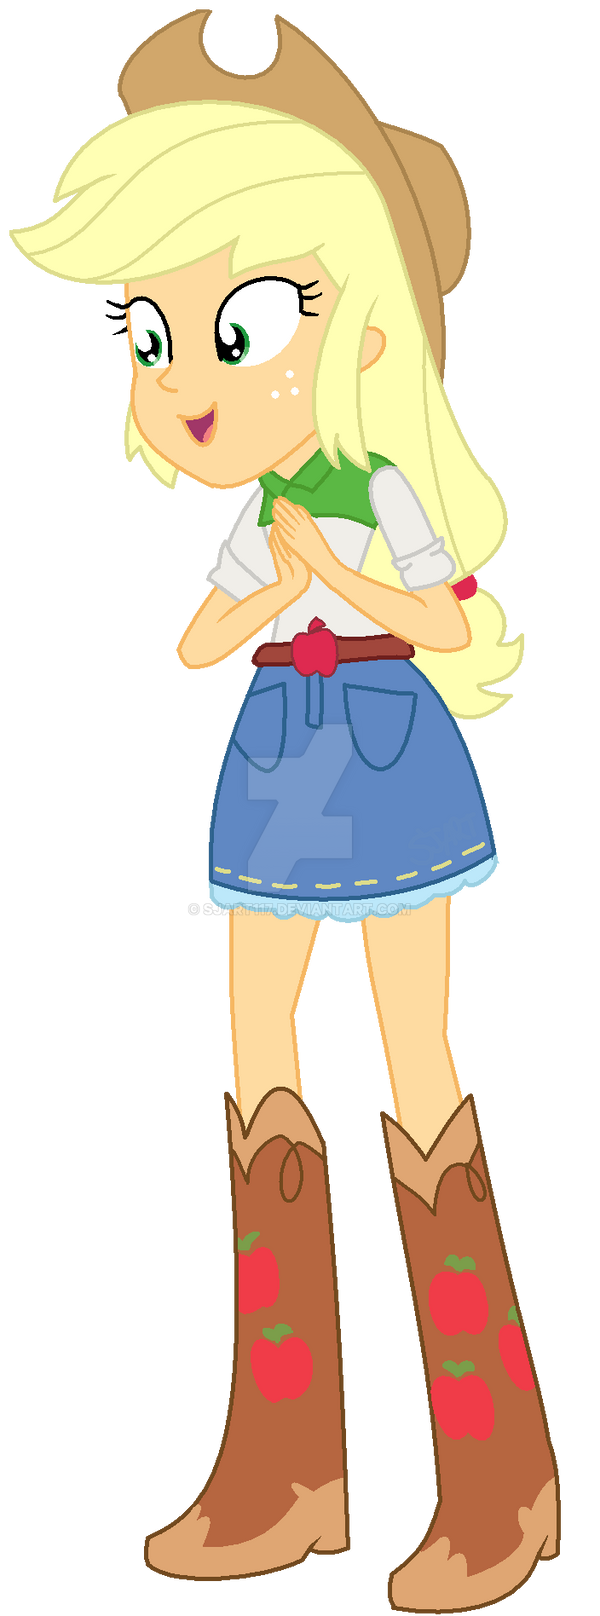 Equestria Girls - Applejack by SJArt117